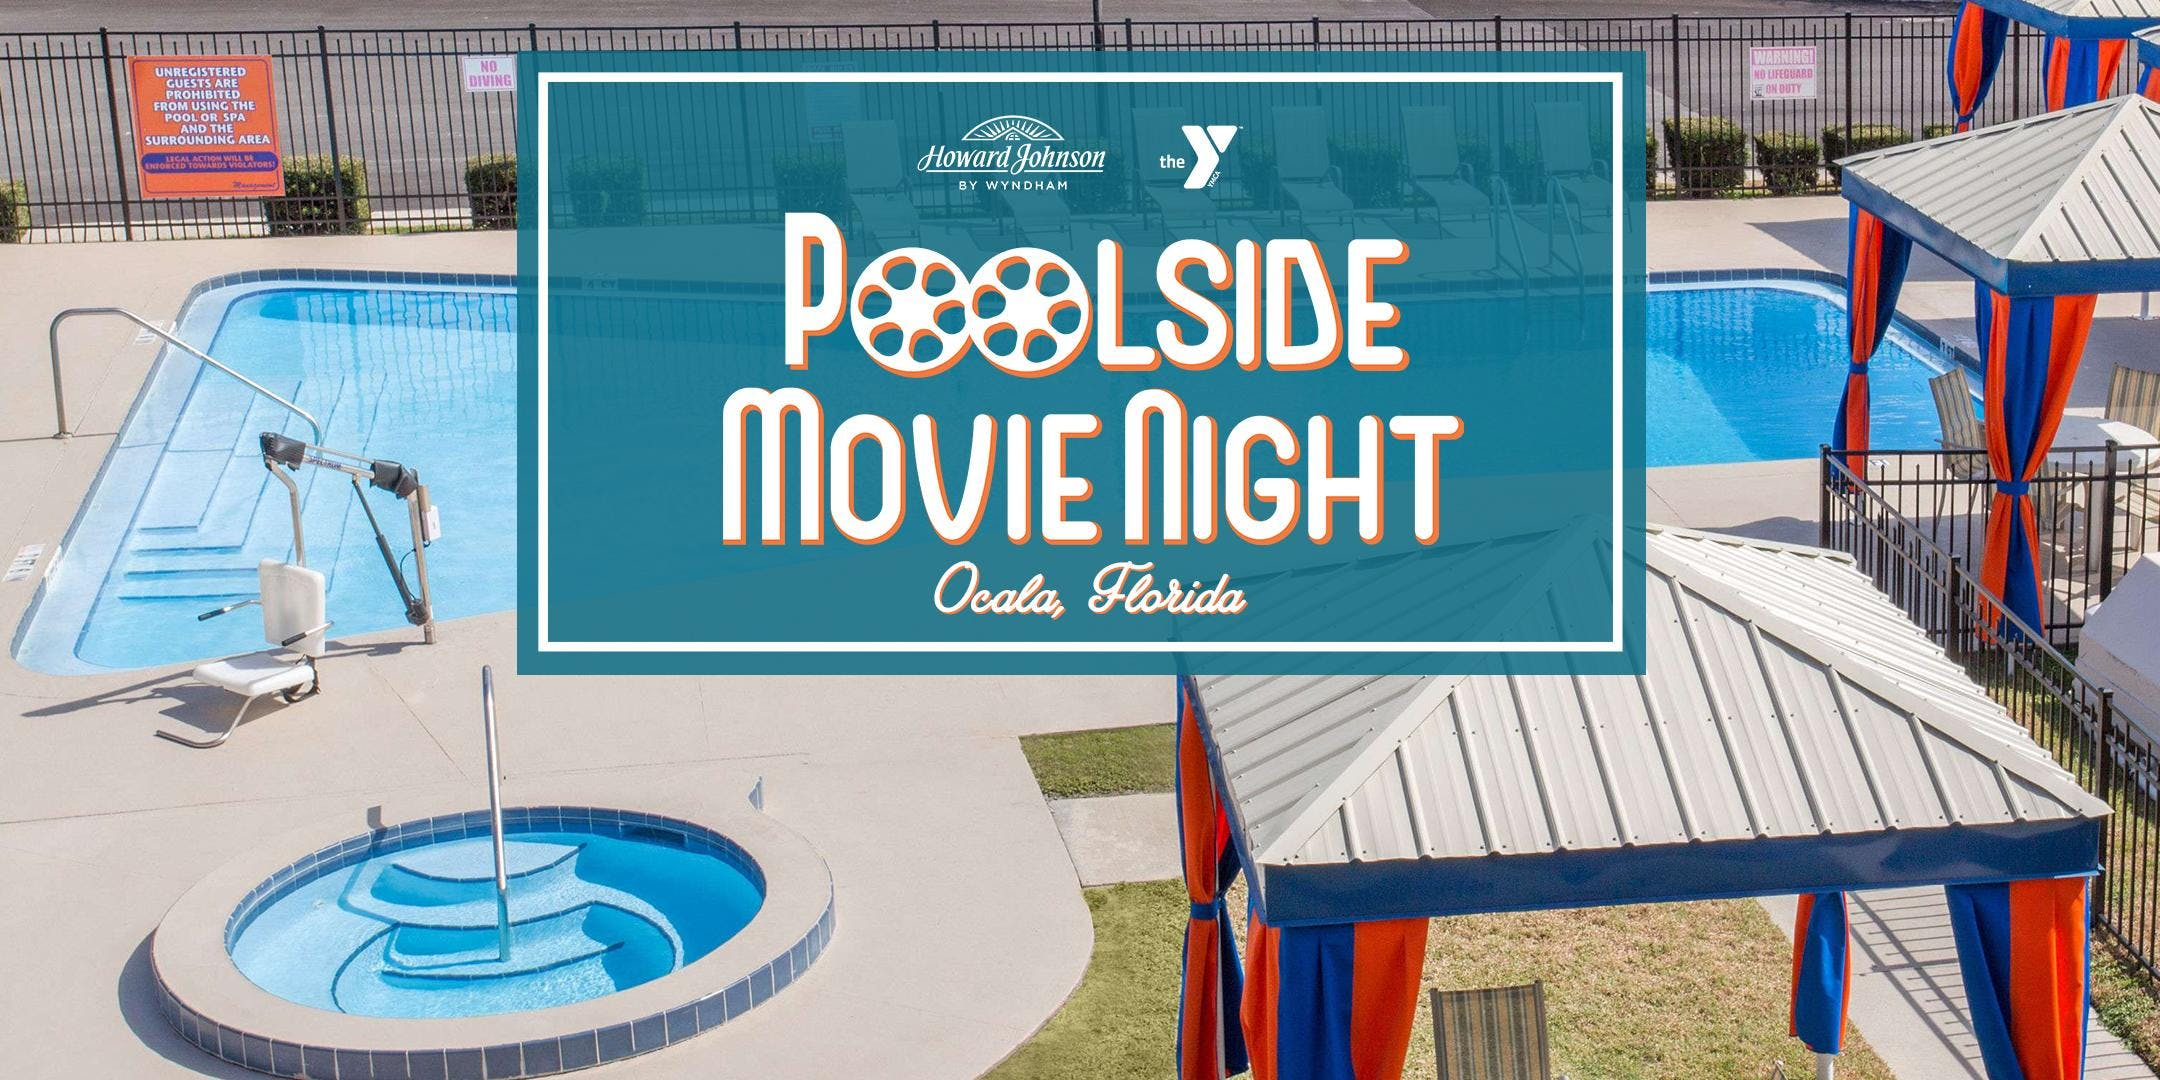 HoJo & the Y Present: Poolside Movie Nights at Ocala, FL | Ocala